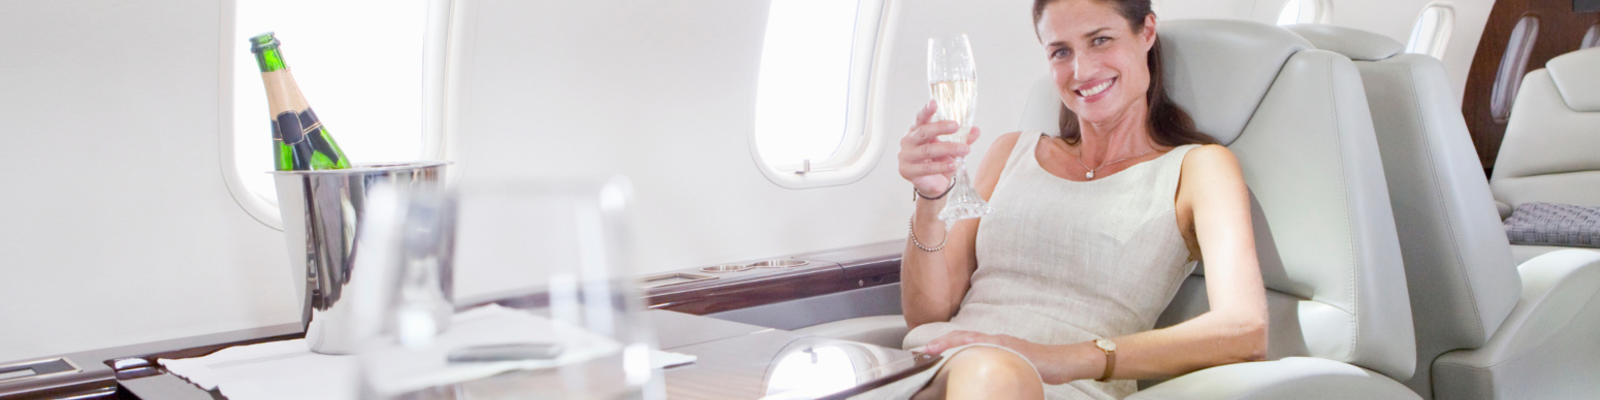 A woman holding a glass of champagne in fancy airplane seat.